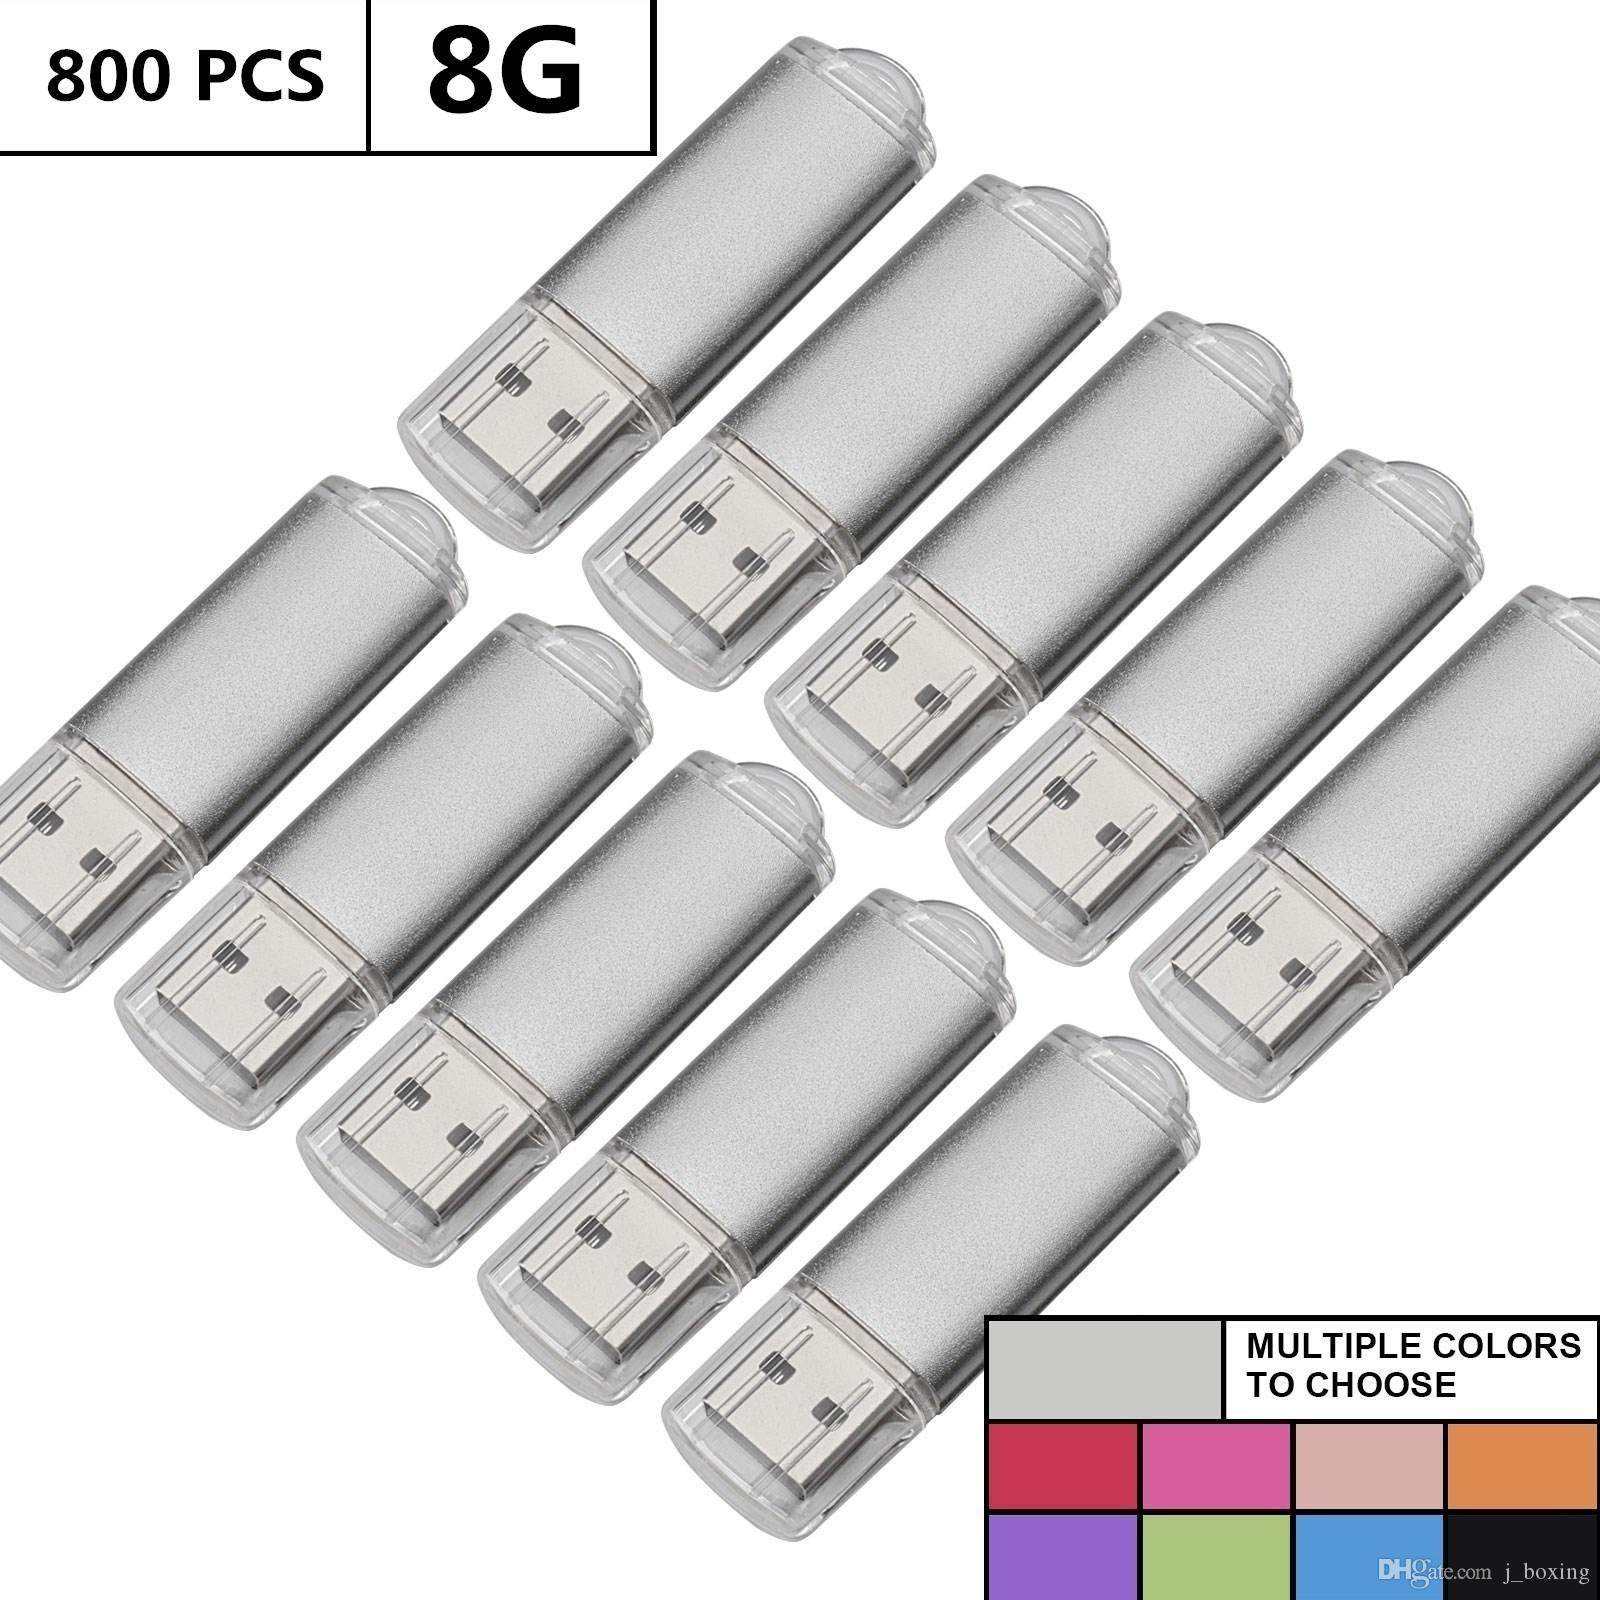 Wholesale Bulk 800PCS 8GB USB Flash Drives Rectangle Memory Stick Storage Thumb Pen Drive Storage LED Indicator for Computer Laptop Tablet